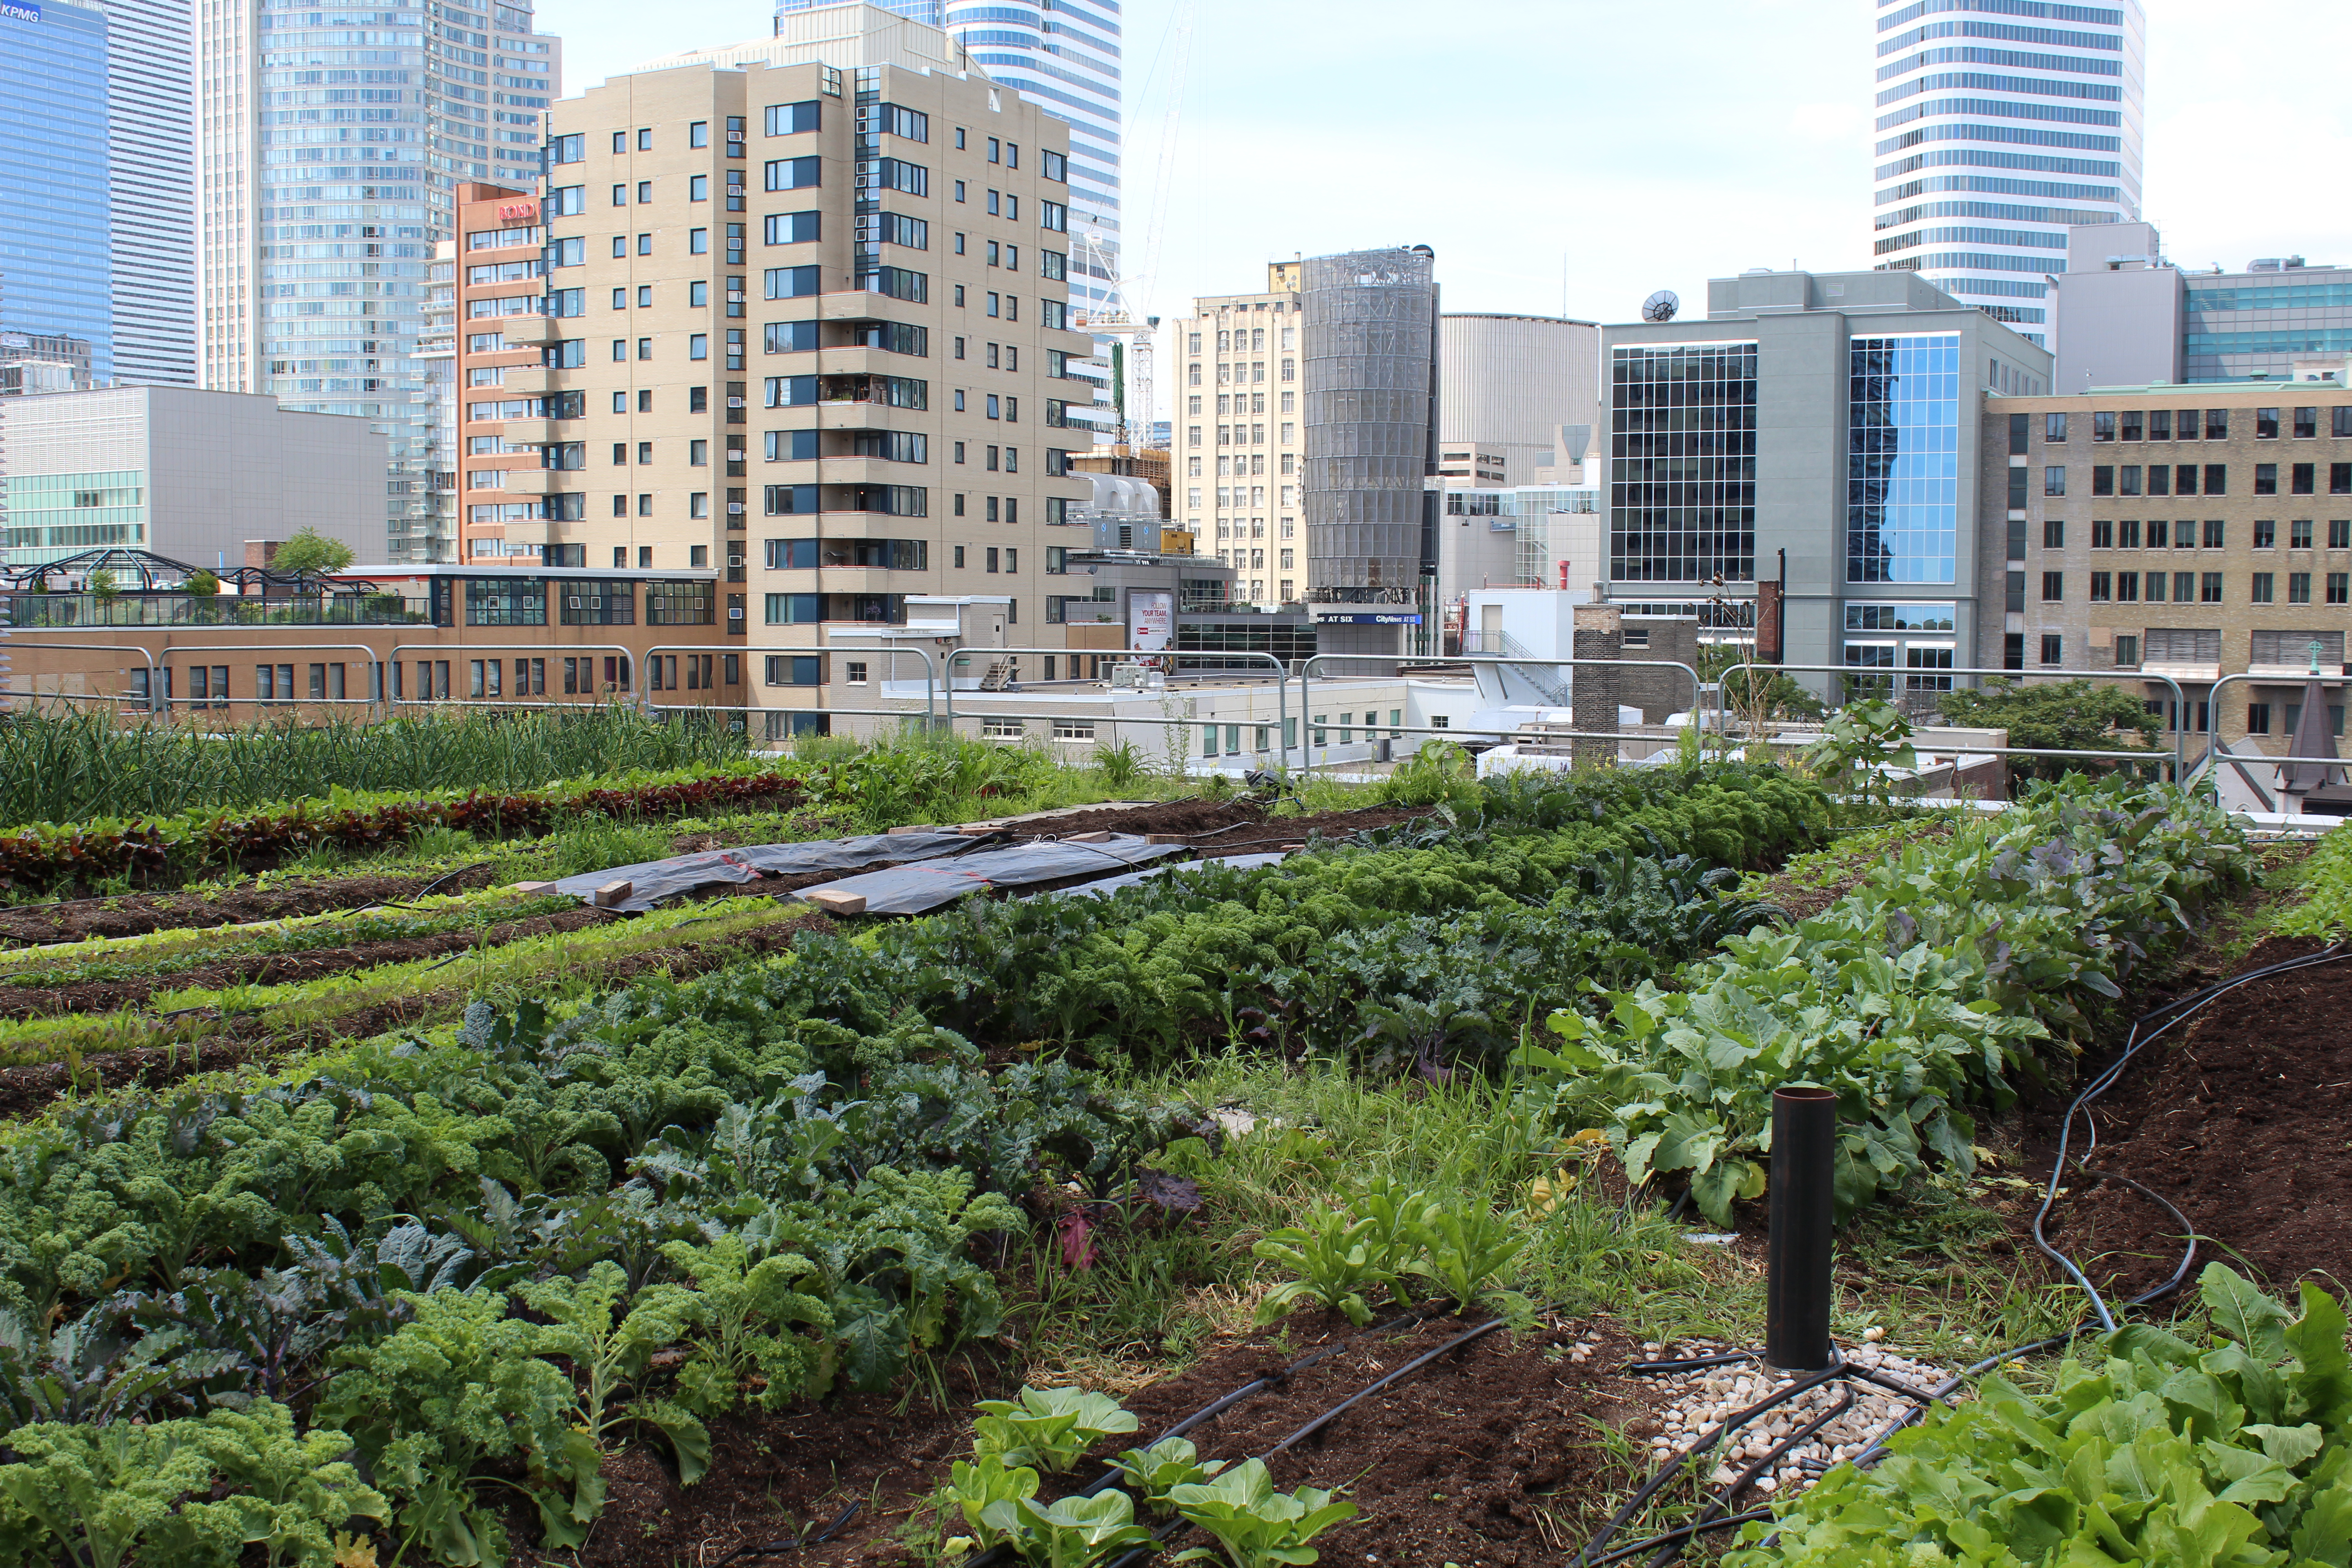 Using Green Roofs To Grow Food Coolearth Architecture Inc